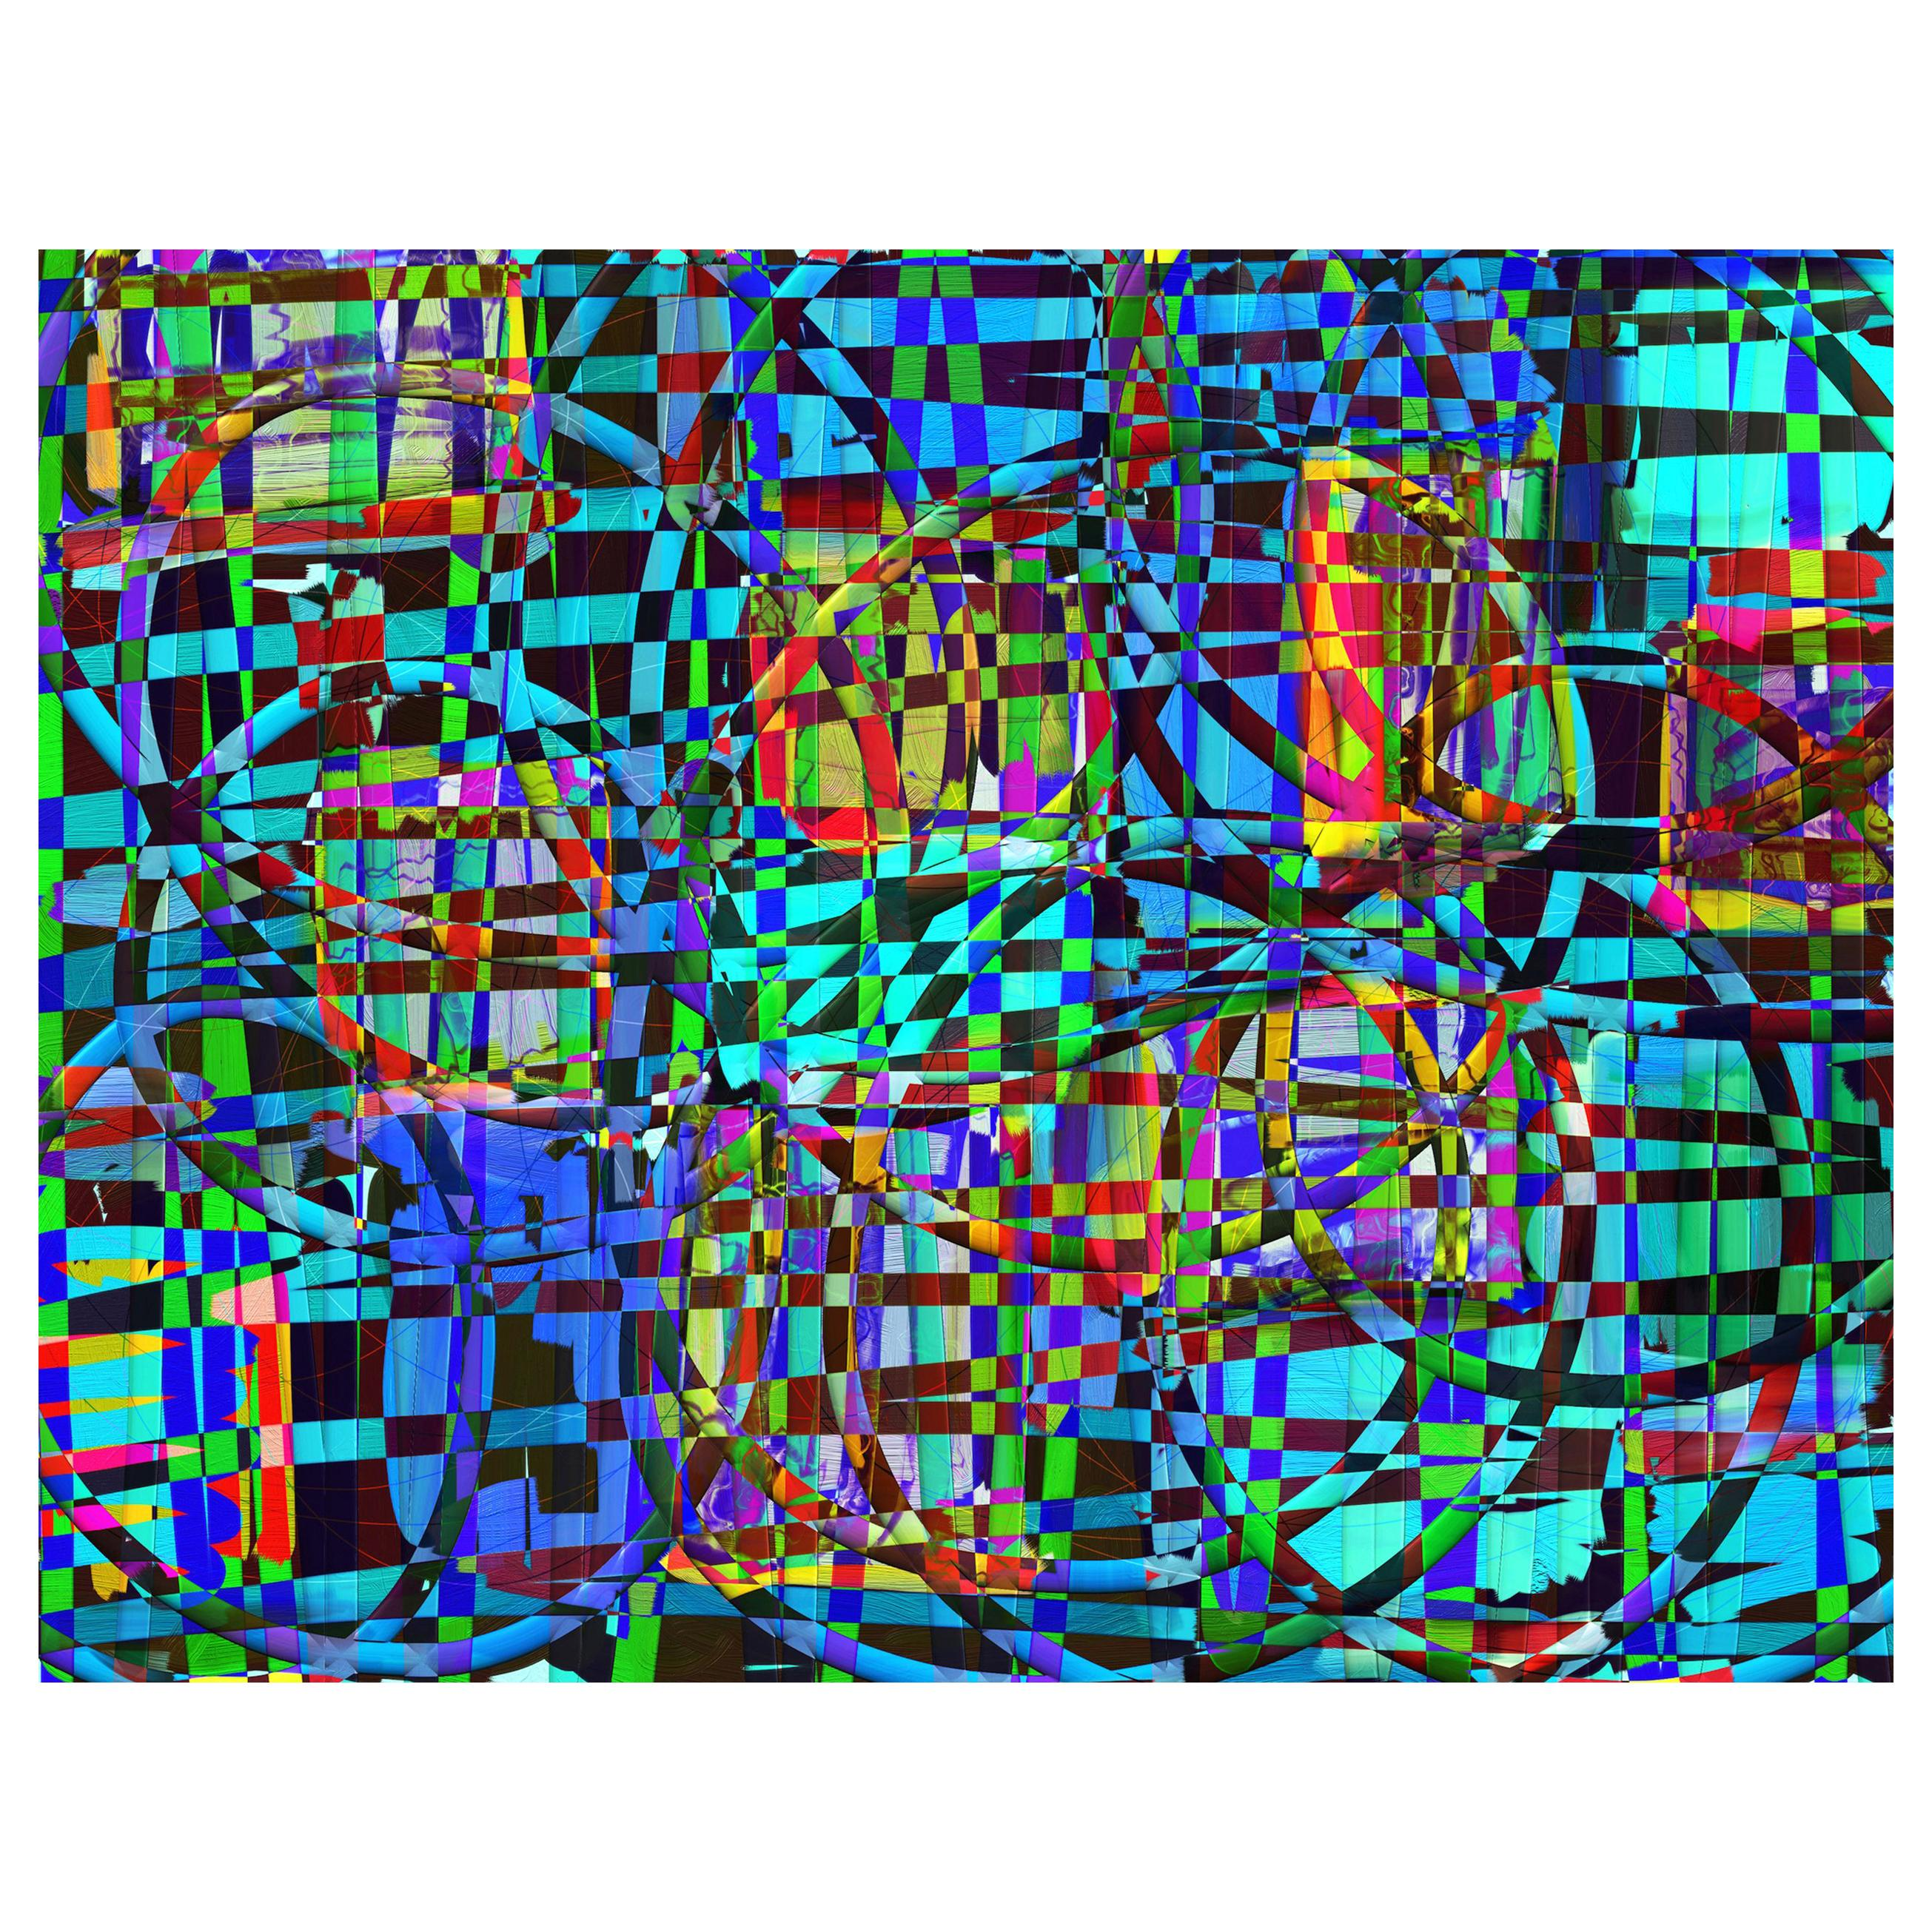 "Abstract Archival Digital Fine Art Print ""Carnival"" by William P. Montgomery"